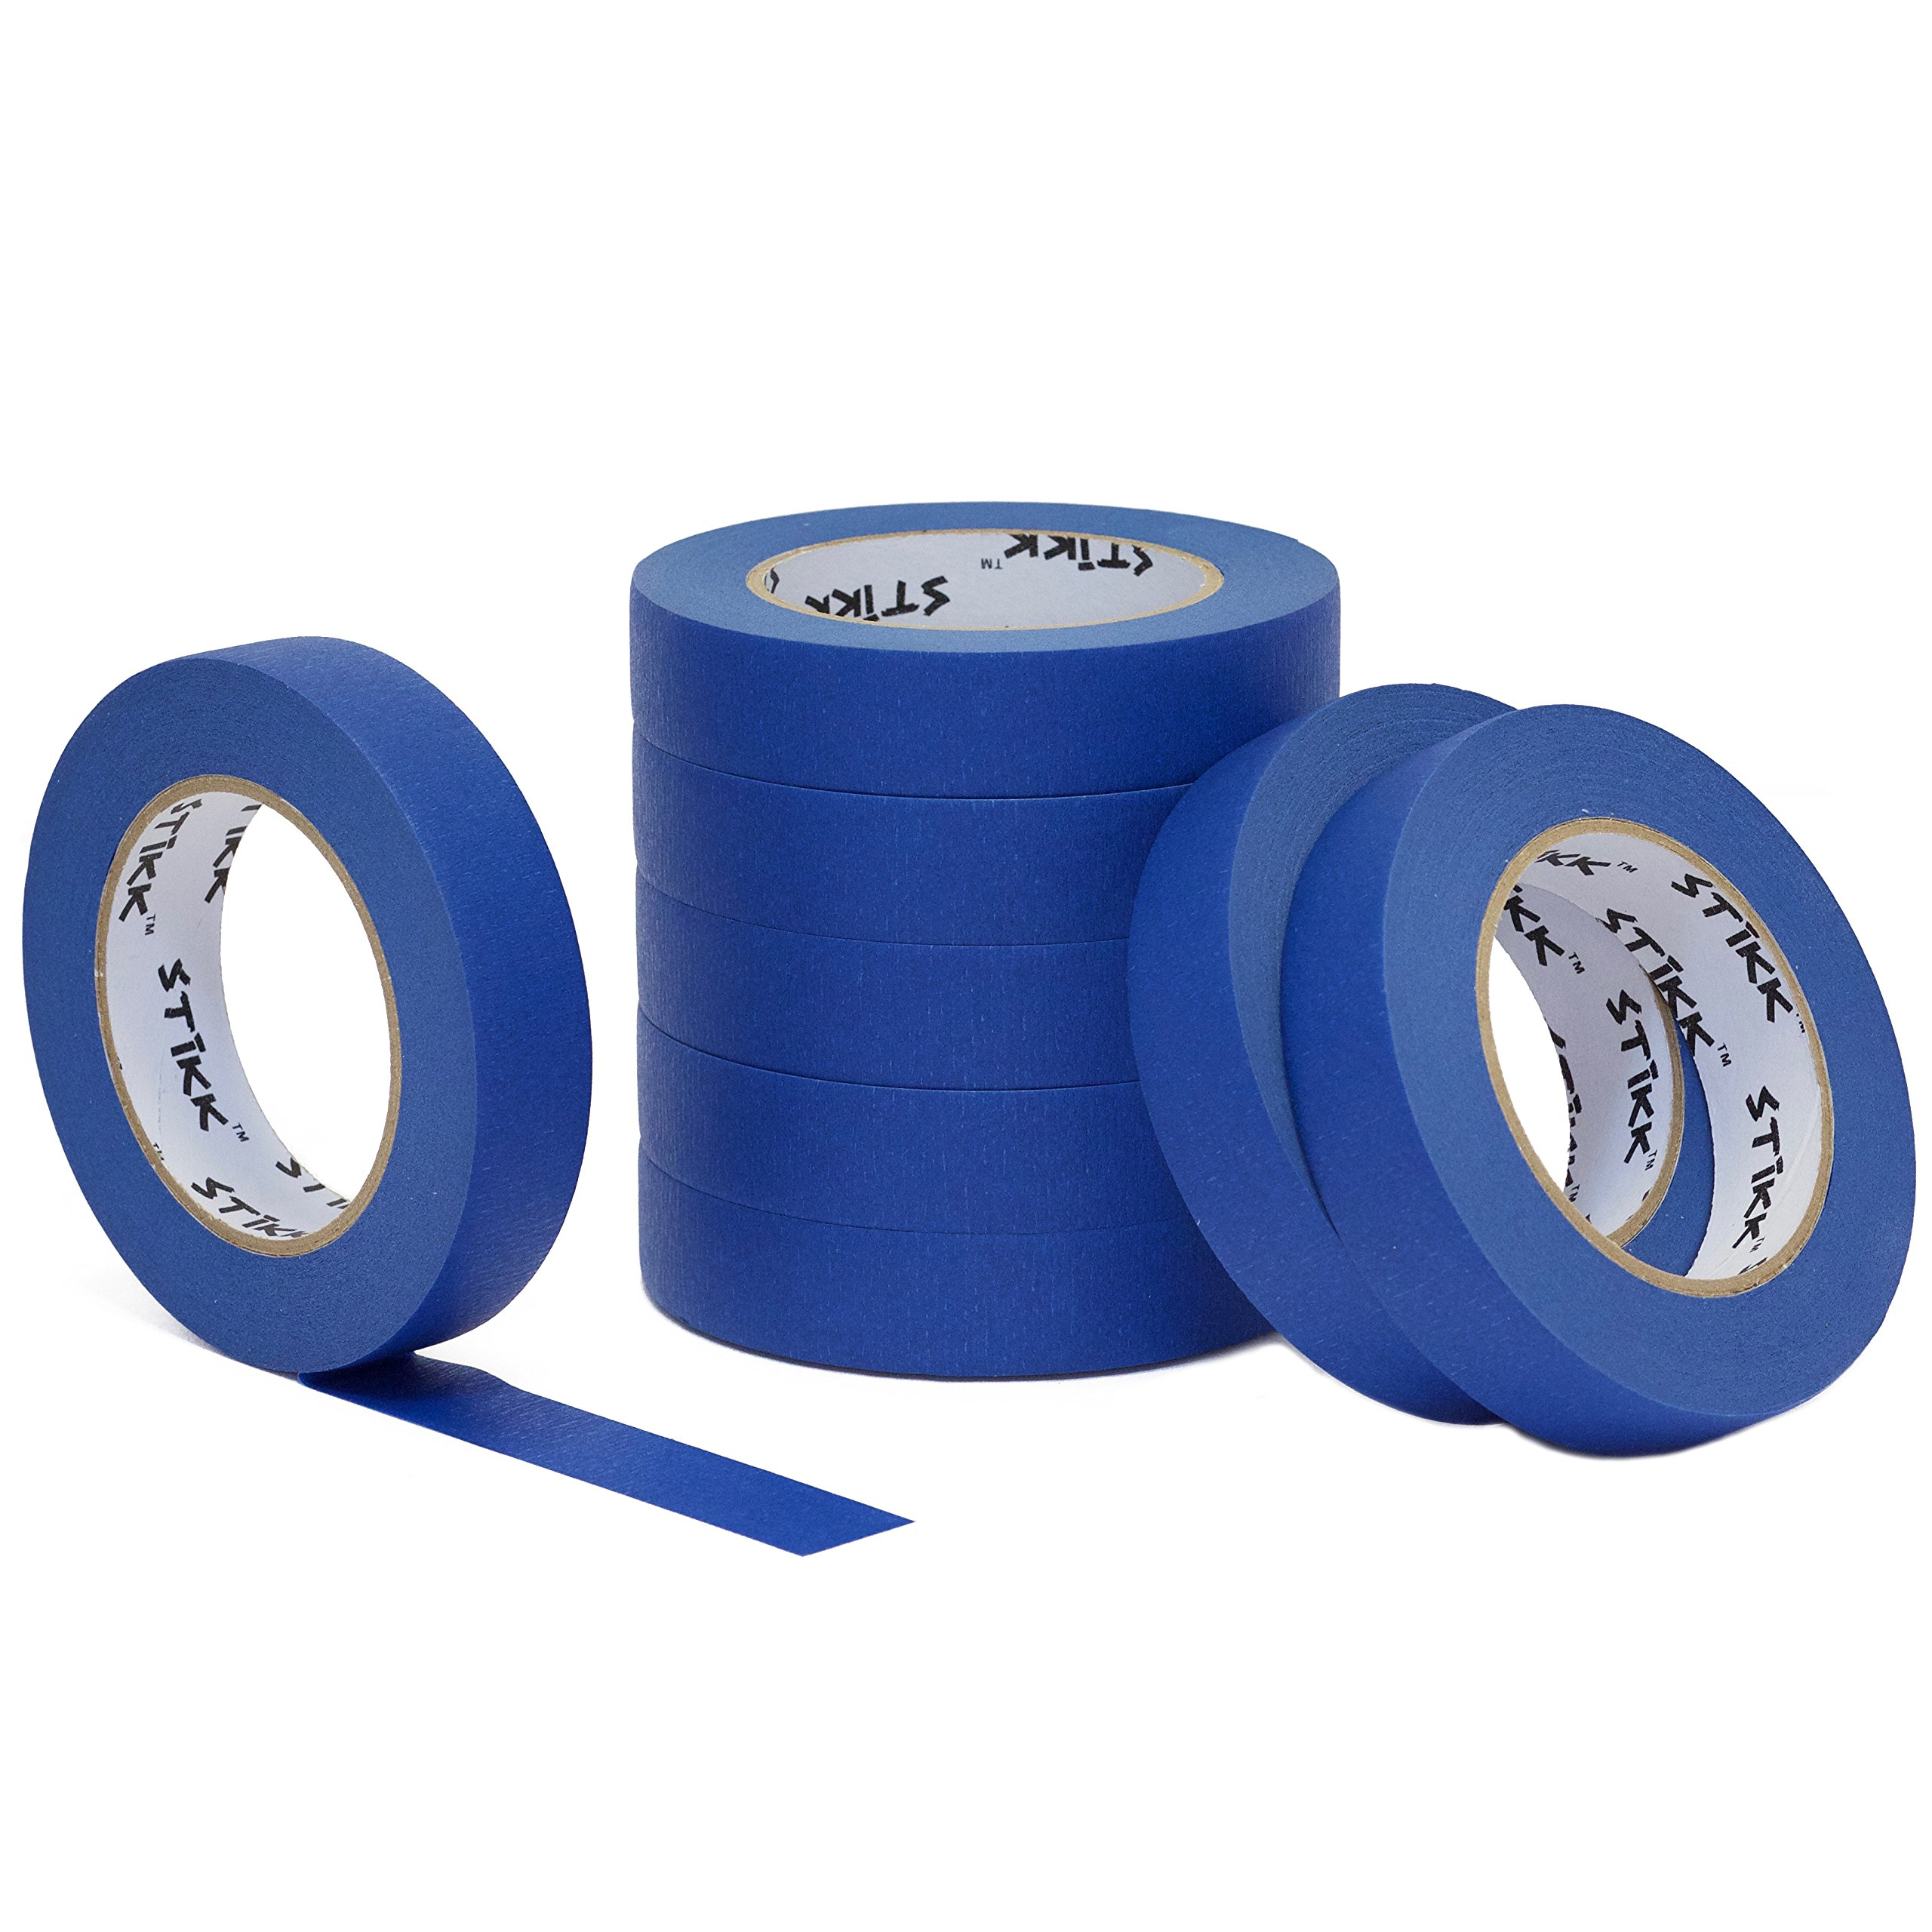 8pk 1'' x 60yd STIKK Blue Painters Tape 14 Day Clean Release Trim Edge Finishing Masking Tape (.94 IN 24MM) (8 Pack) by STIKK TAPE (Image #1)